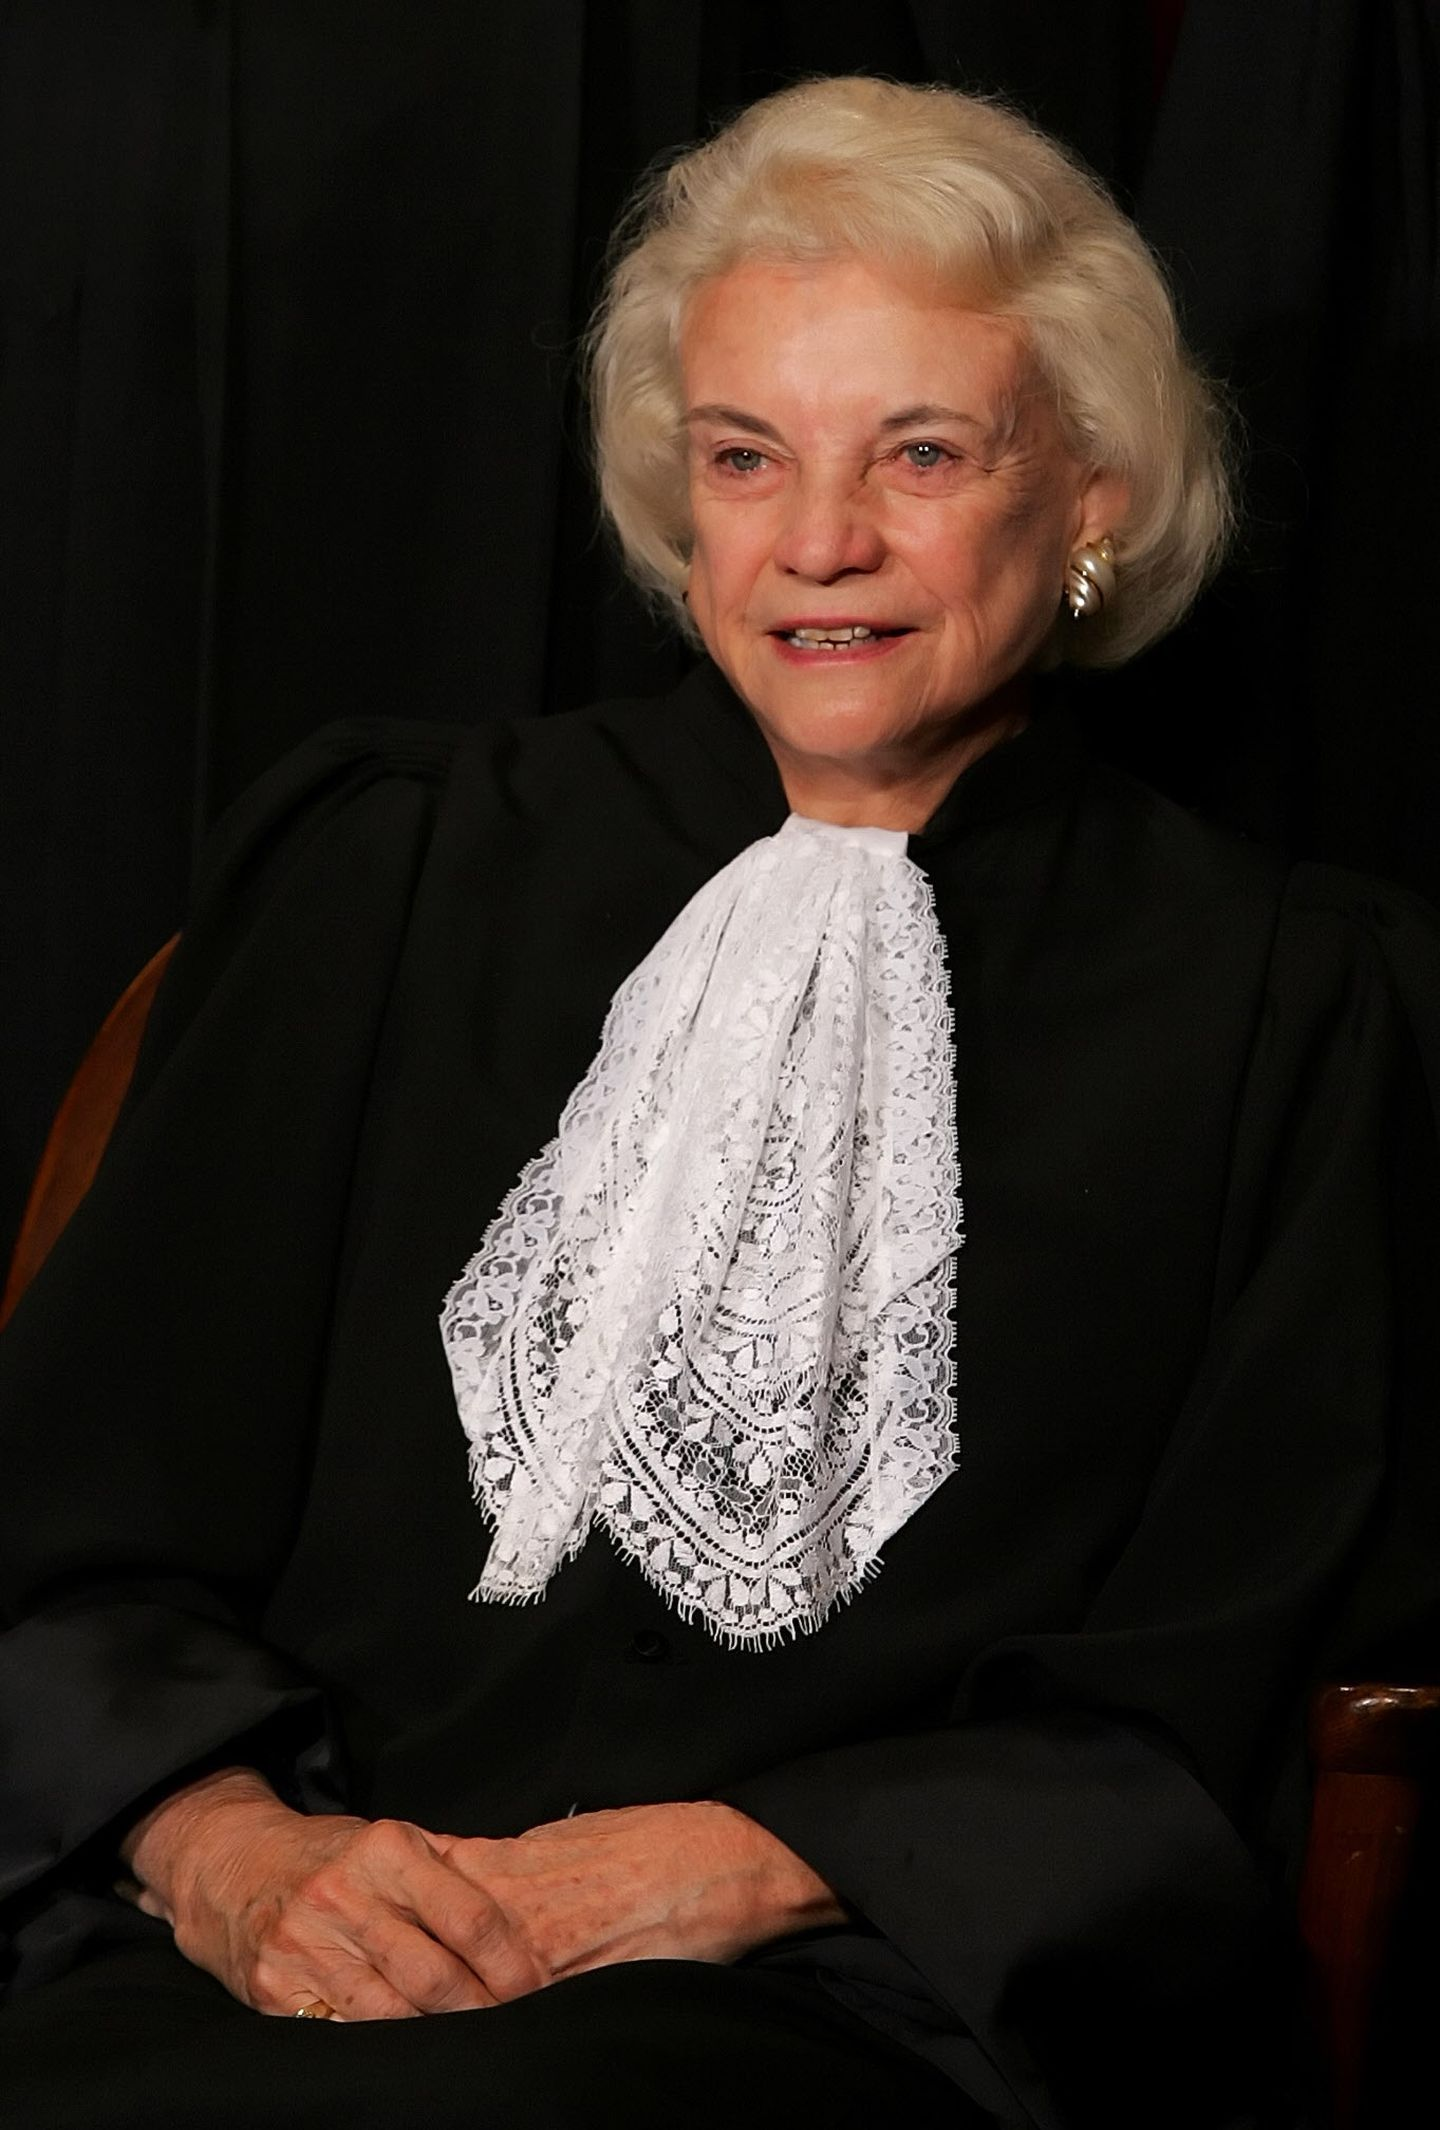 Out of Order' by Sandra Day O'Connor - The Boston Globe